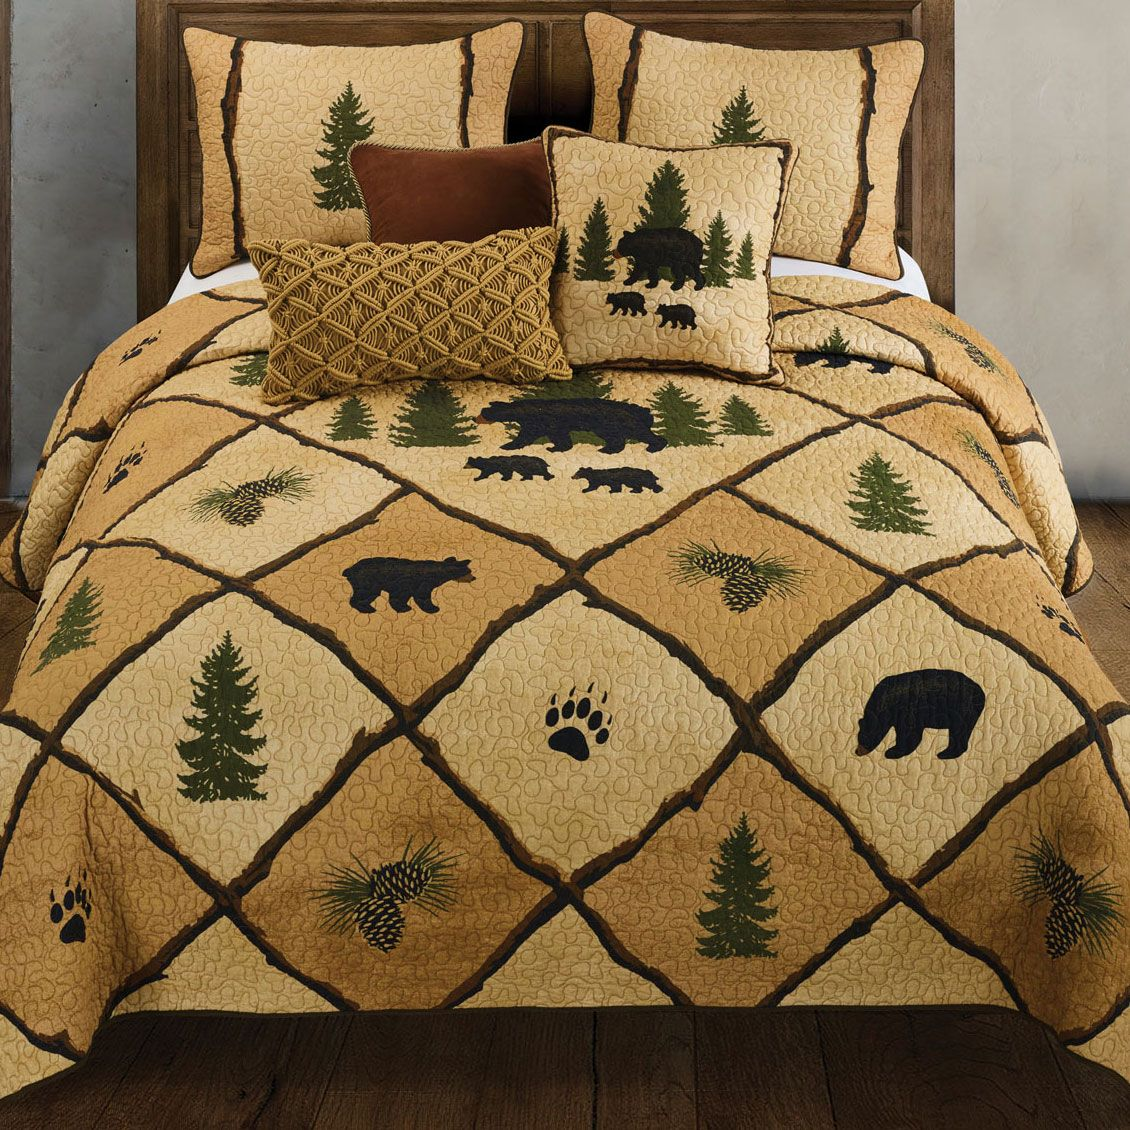 Forest Prints Bear Quilt Full Queen